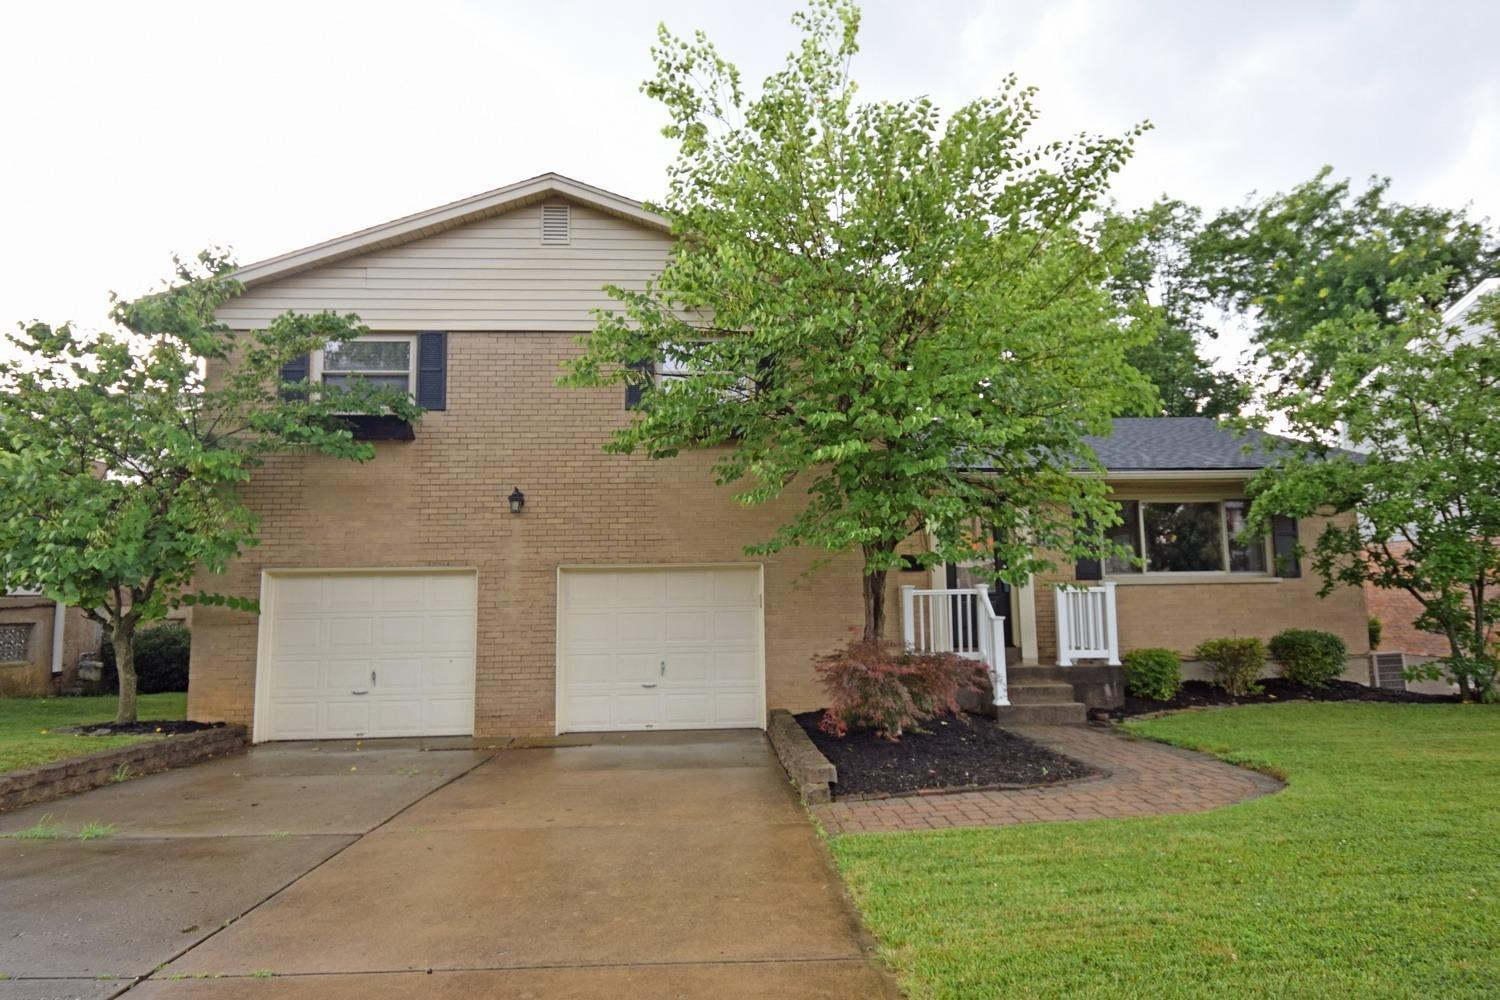 2089 Townhill Dr Green Twp. - Hamilton Co., OH